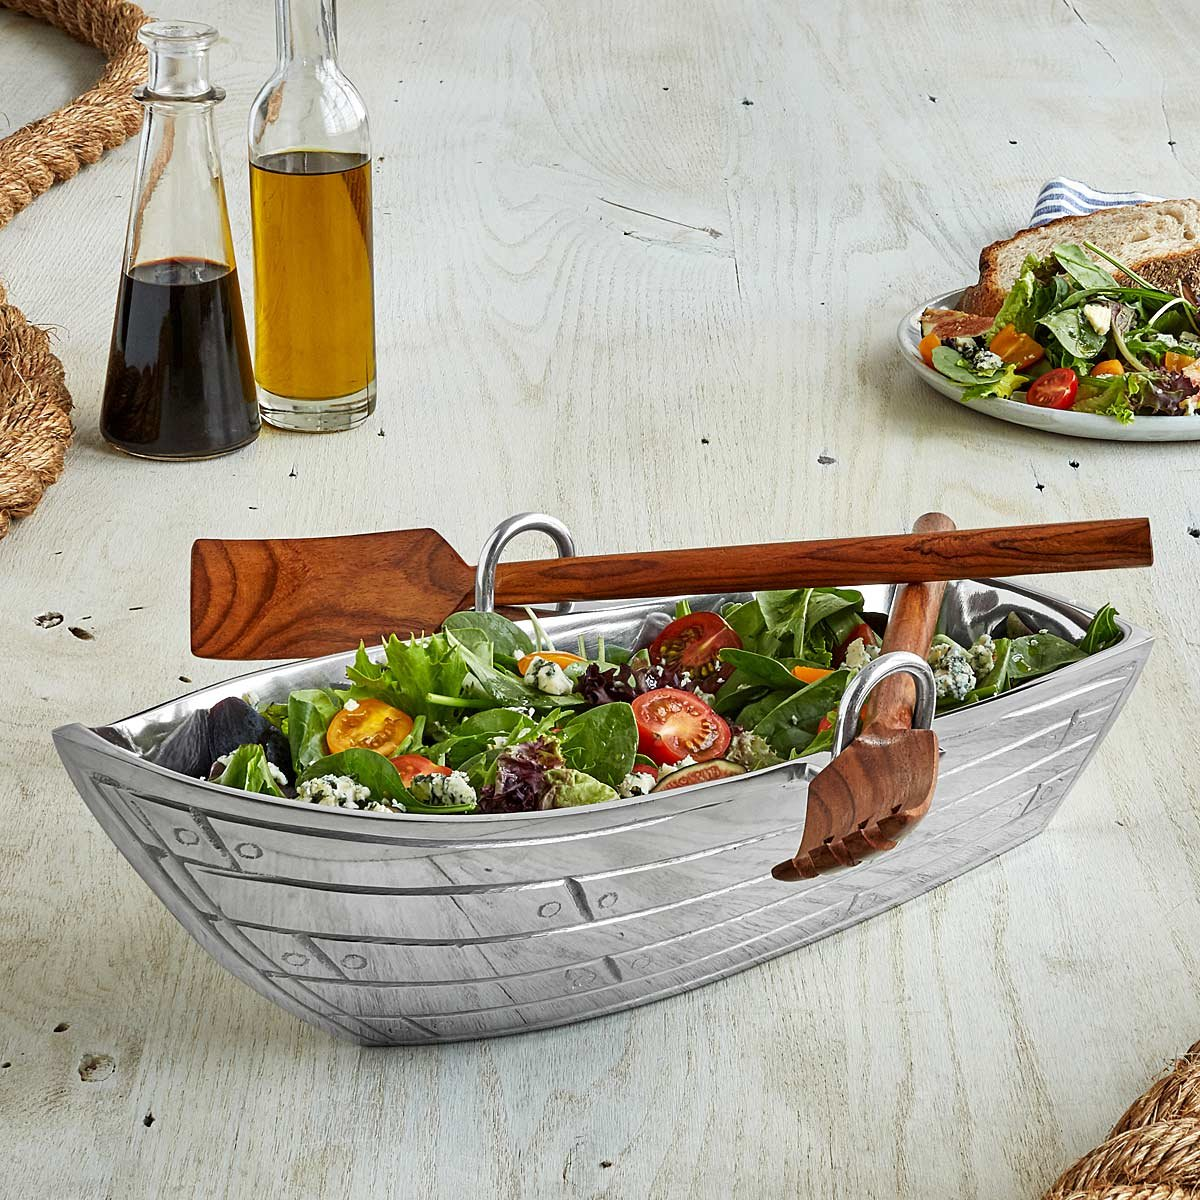 ROW BOAT SERVING BOWL WITH WOOD UTENSILS Serving Platter